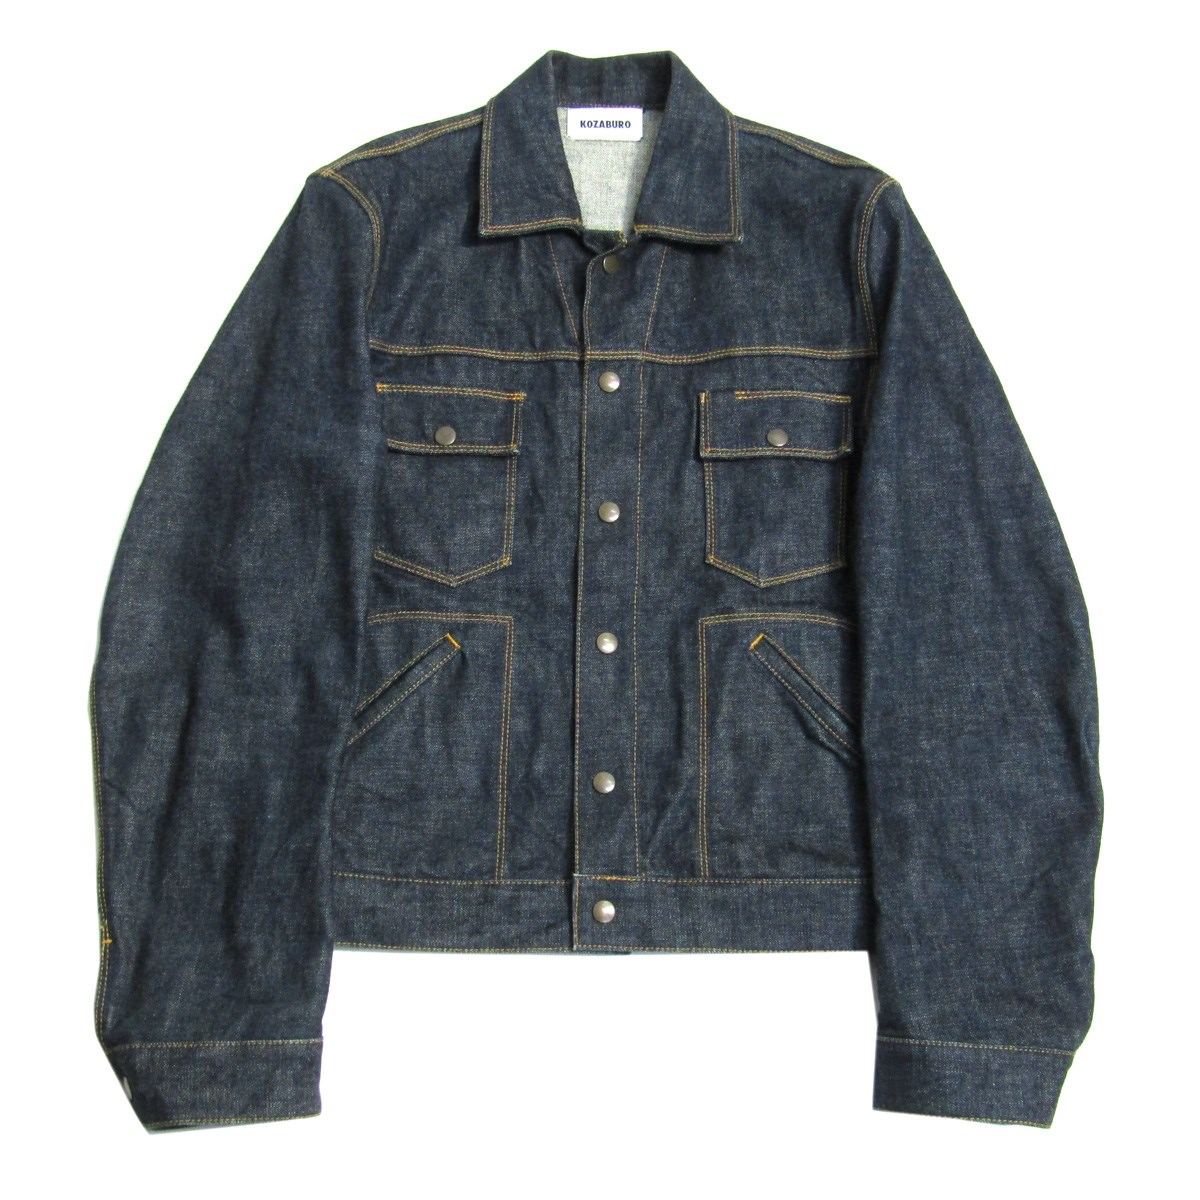 【中古】KOZABURO 2018SS SELVEDGE DENIM TAILORED SLEEVE JEAN JACKET インディゴ サイズ:1 【230820】(コウザブロウ)